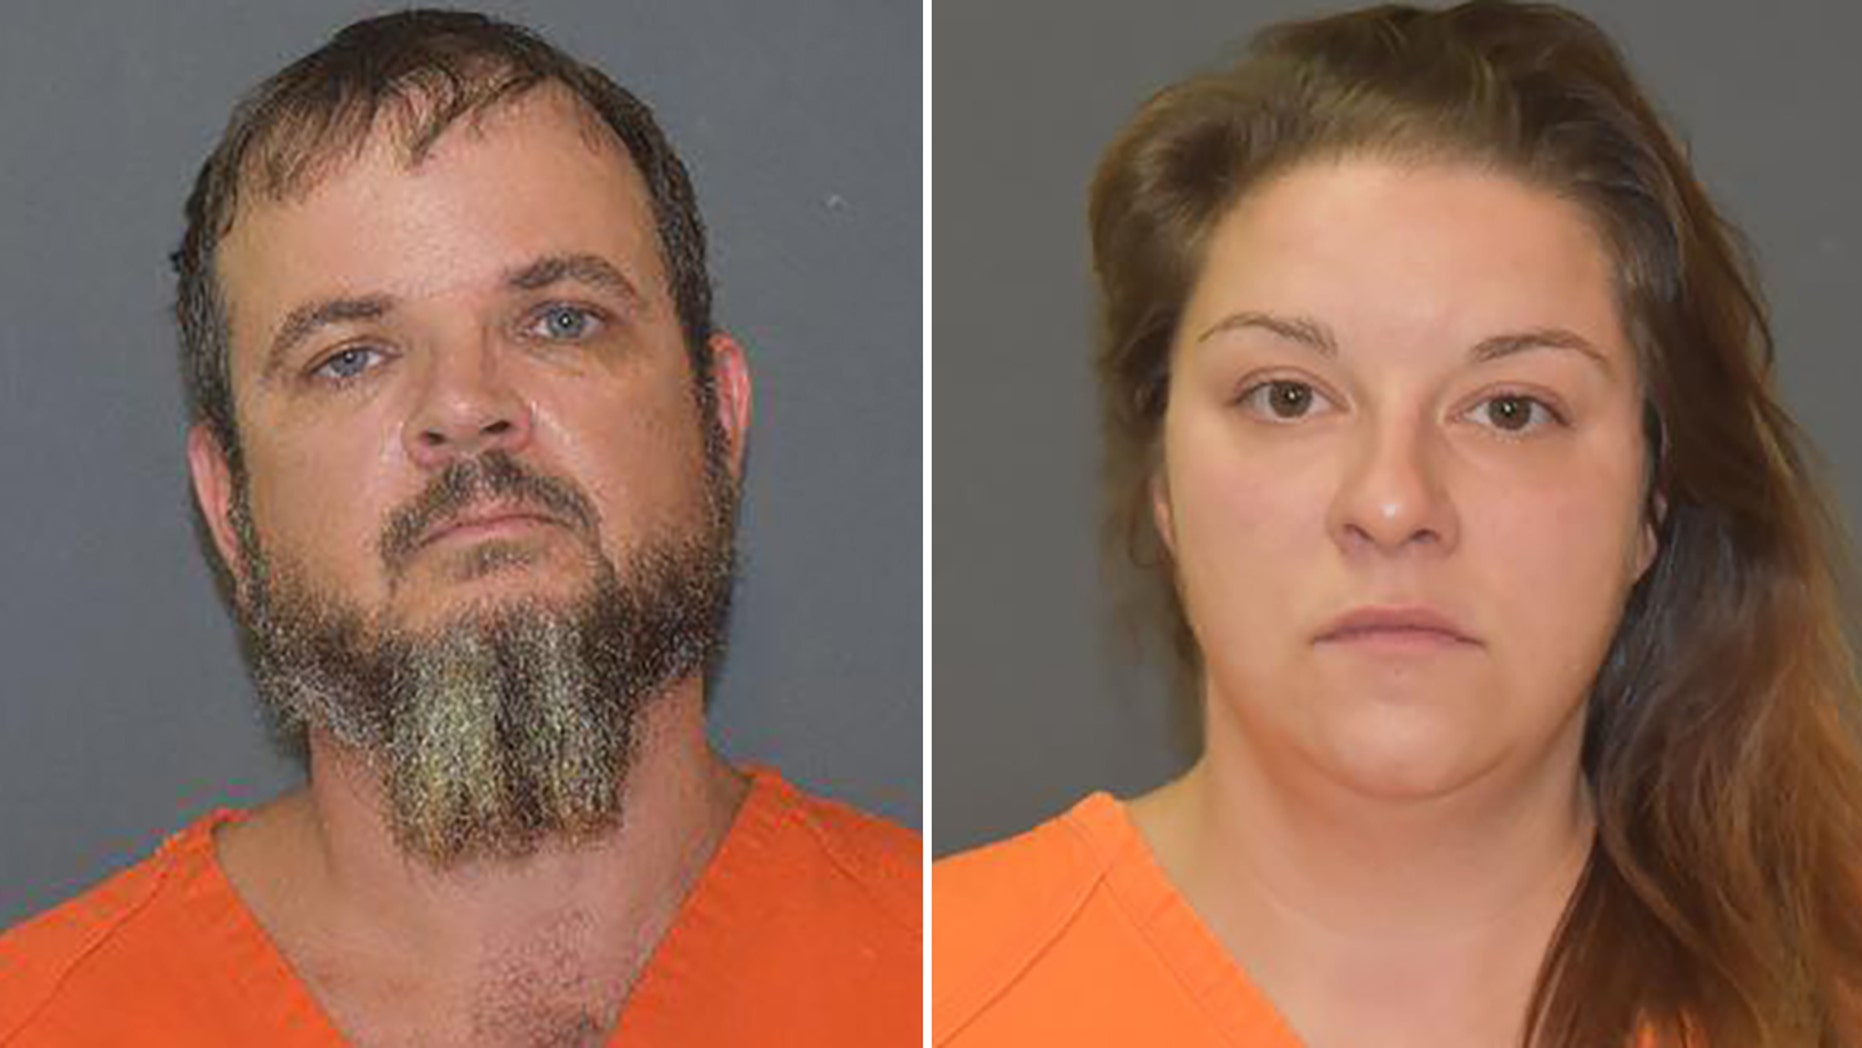 Thomas D. Wininger, 40, and Desirae Tomcanin, 34, were accused of brutally abusing Wininger's 15-year-old son in Sulphur, La., police said.